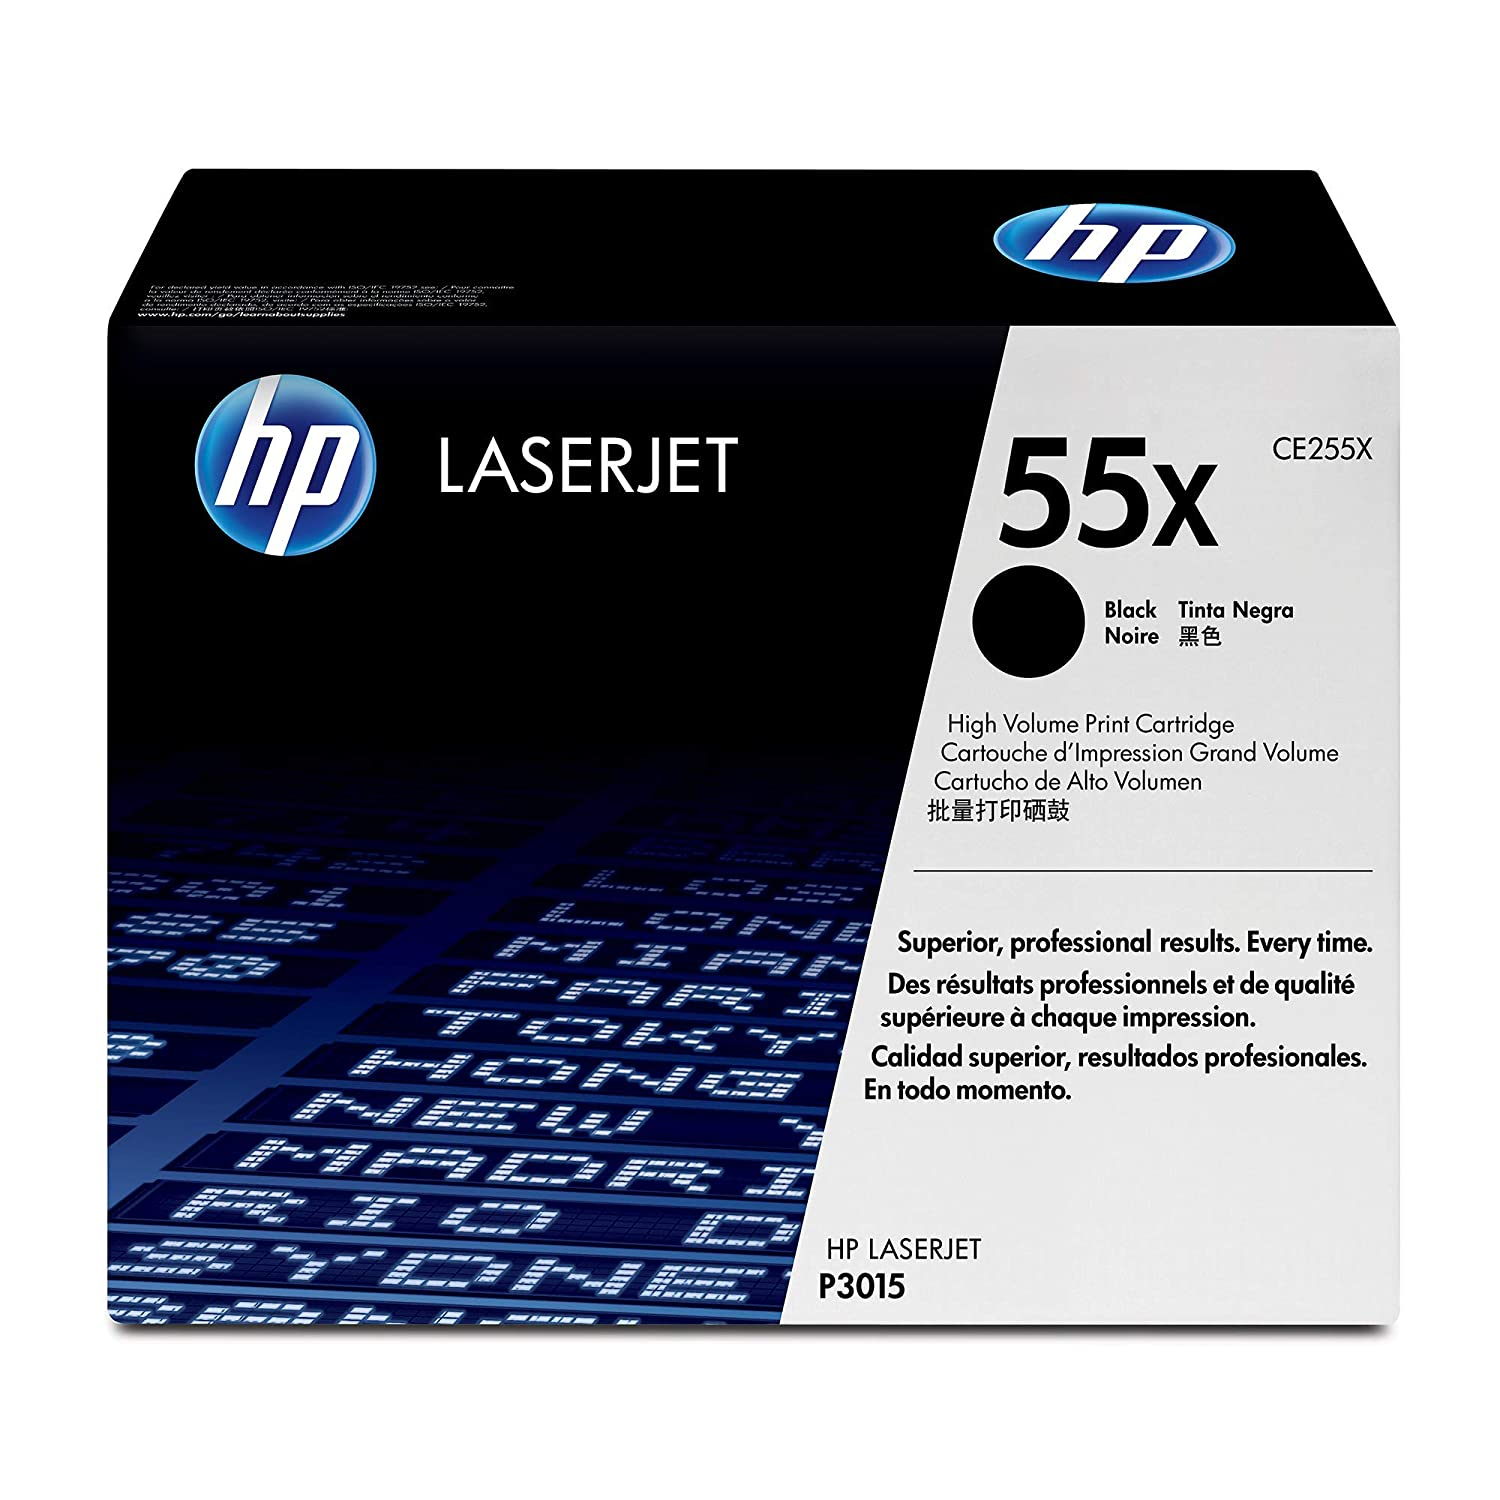 HP 55X (CE255X) Black High Yield Toner Cartridge for HP LaserJet Enterprise 525 P3015 HP LaserJet Pro M521